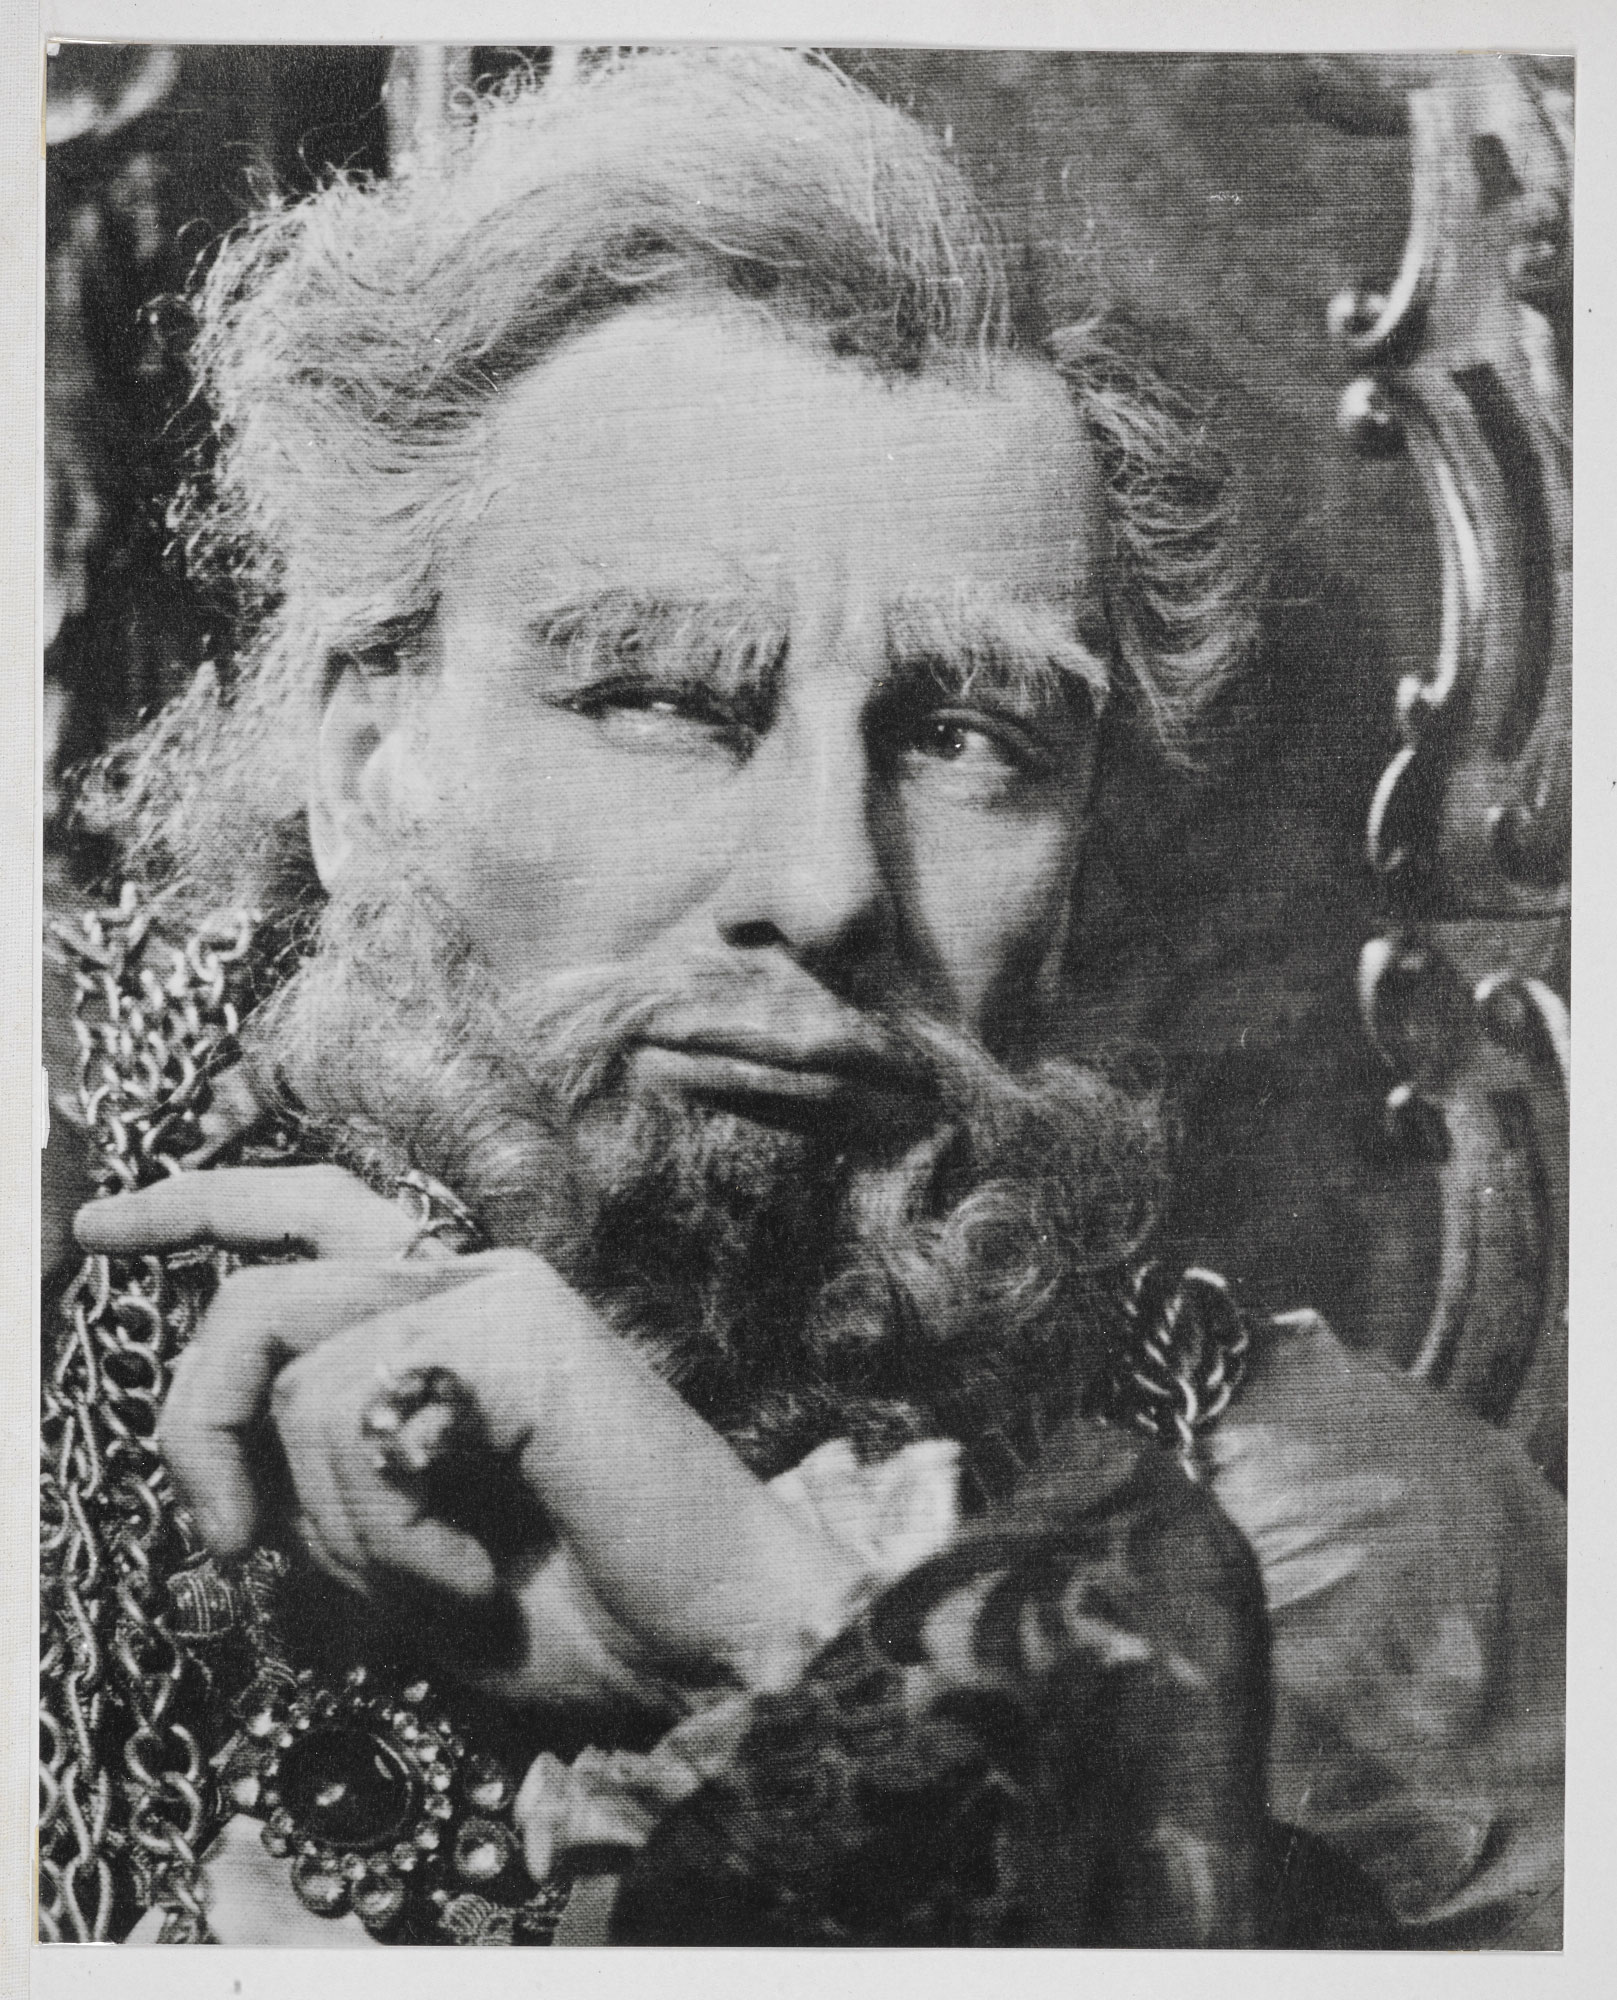 Photograph of John Gielgud as Lear, 1940